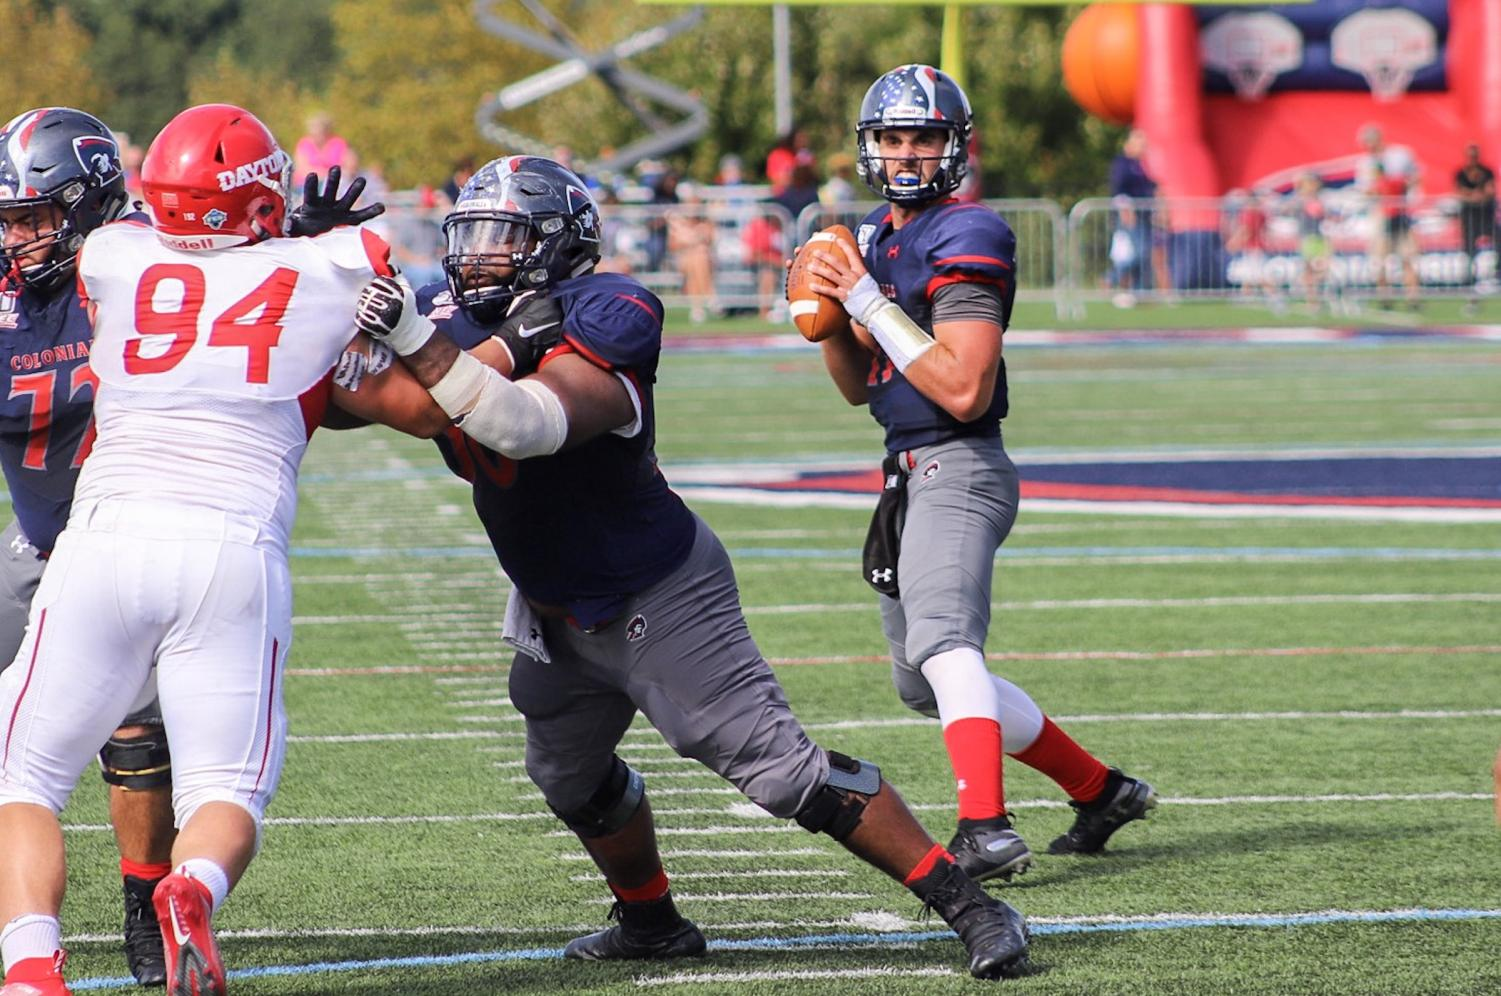 Preview: Football looks to pick up first win of the season